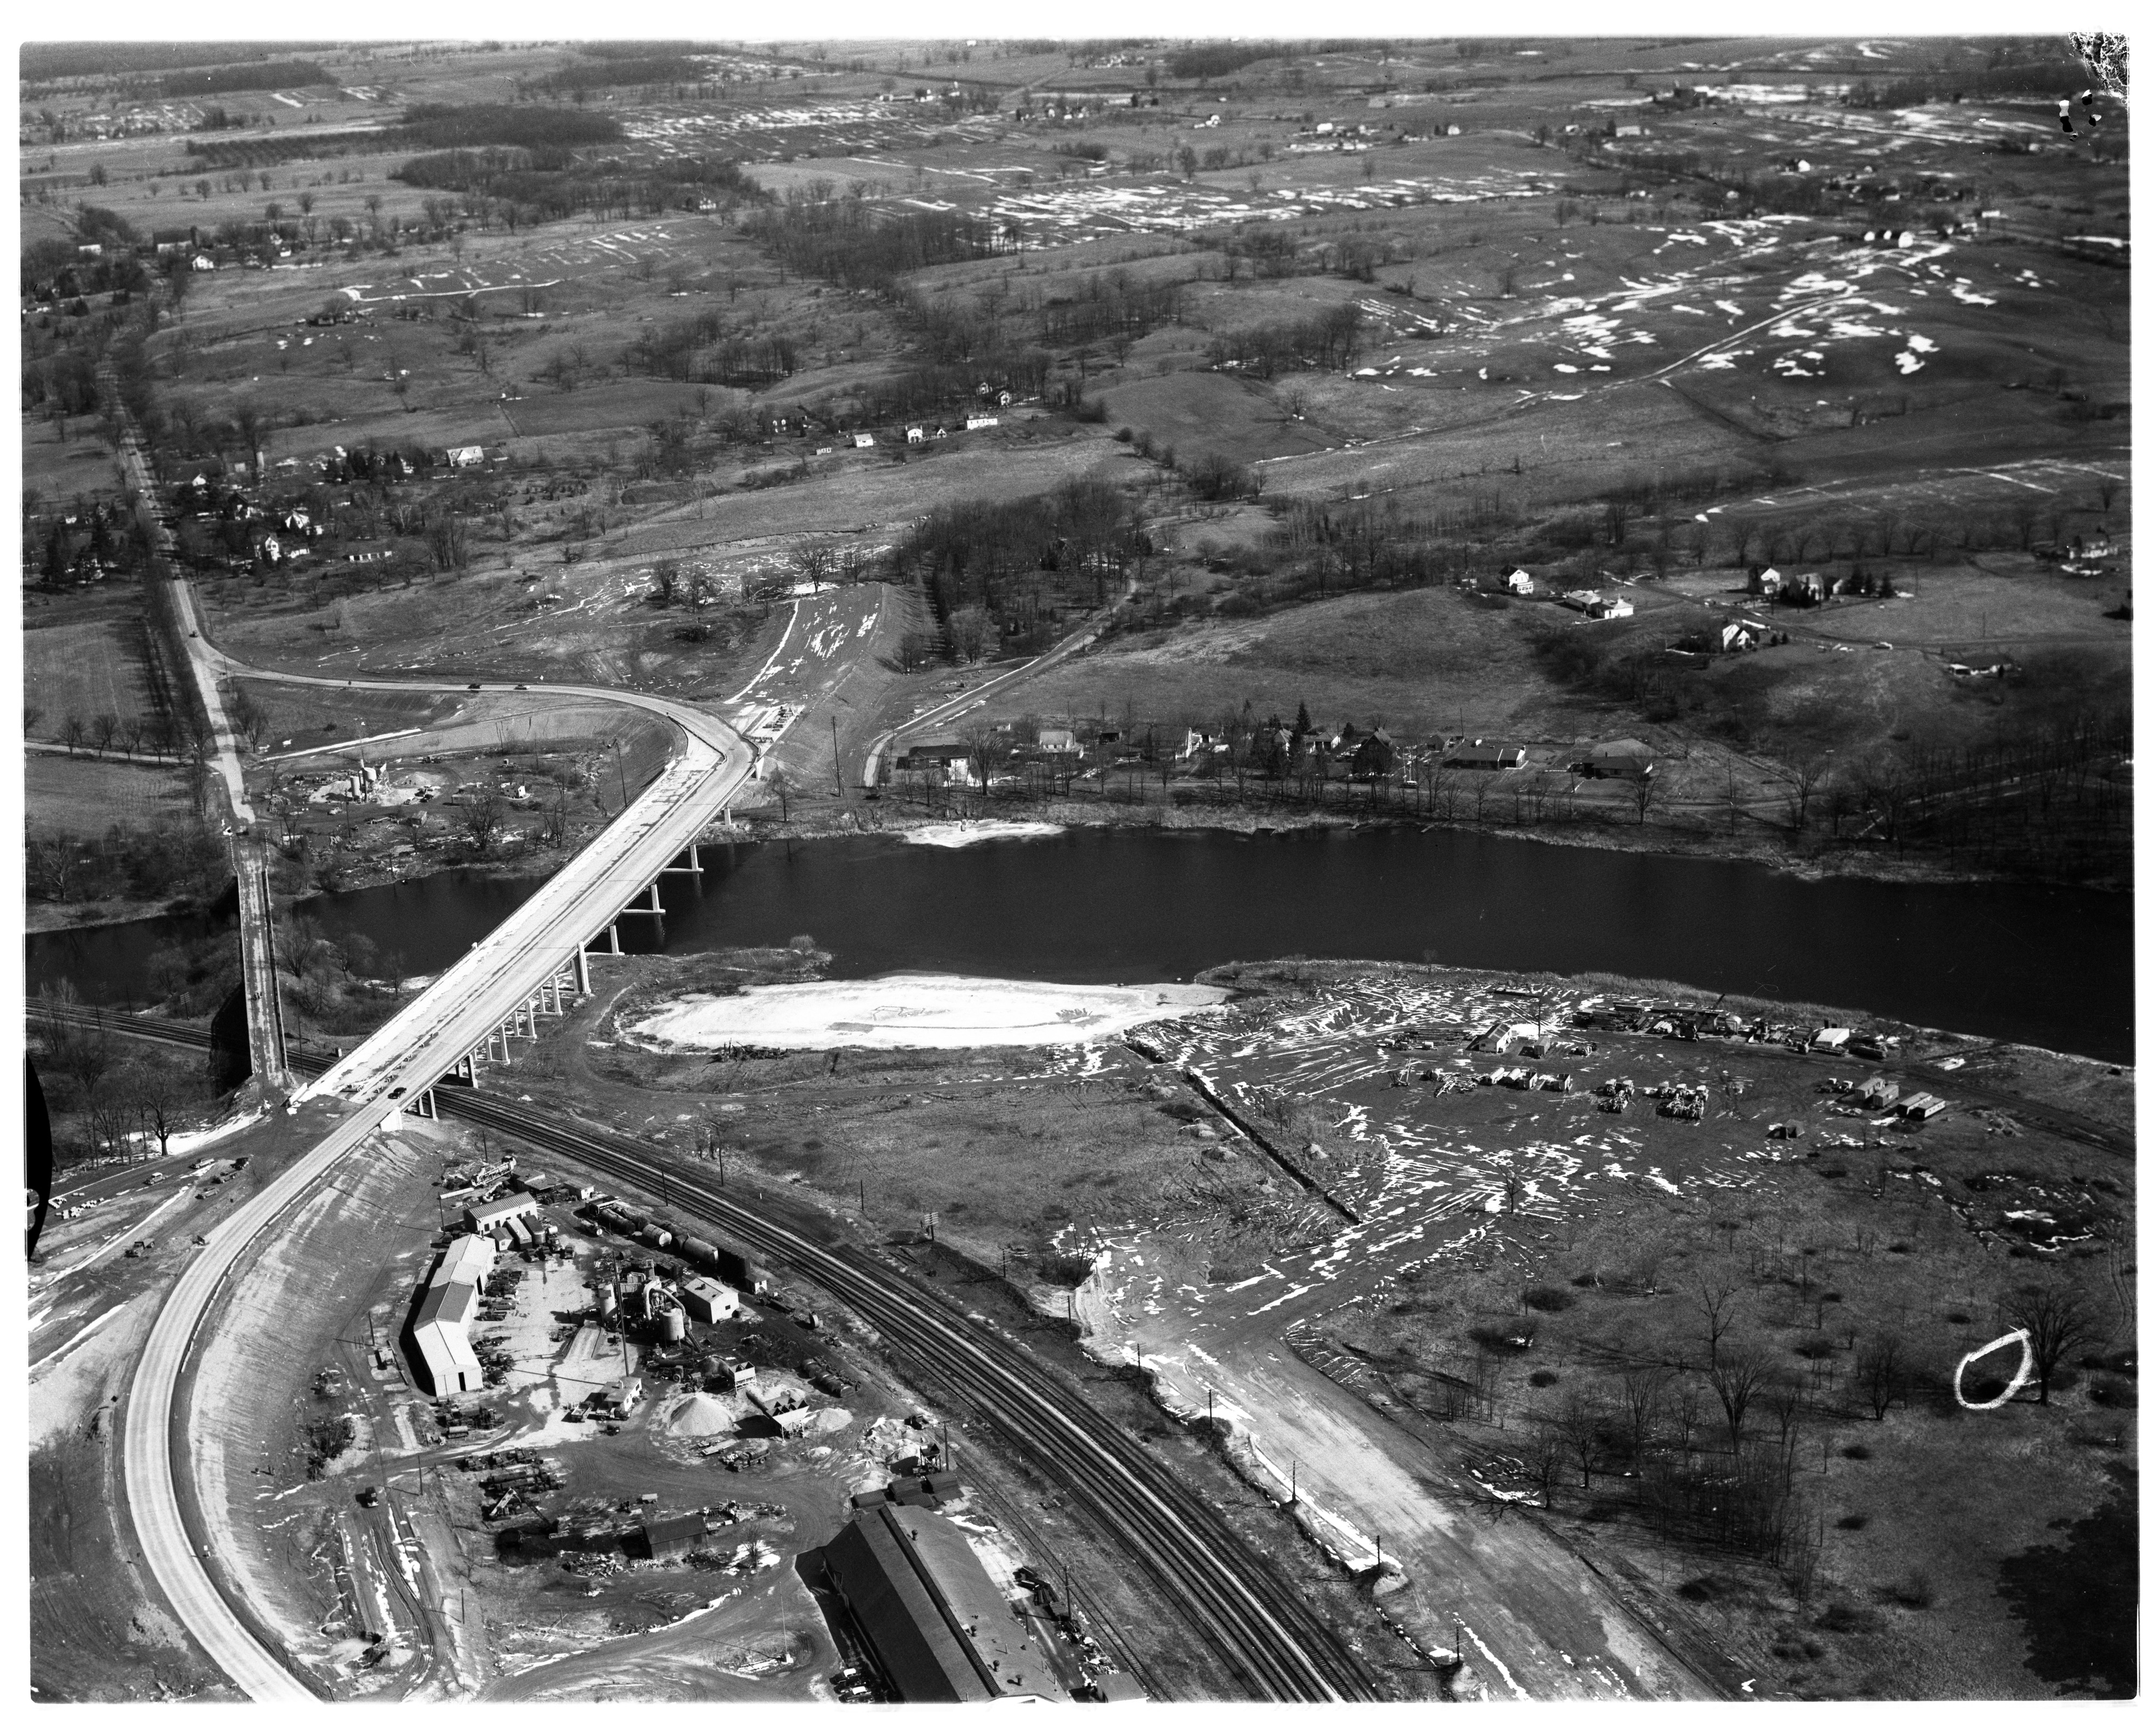 Aerial Photograph of the Huron Valley Bridge, March 1956 image